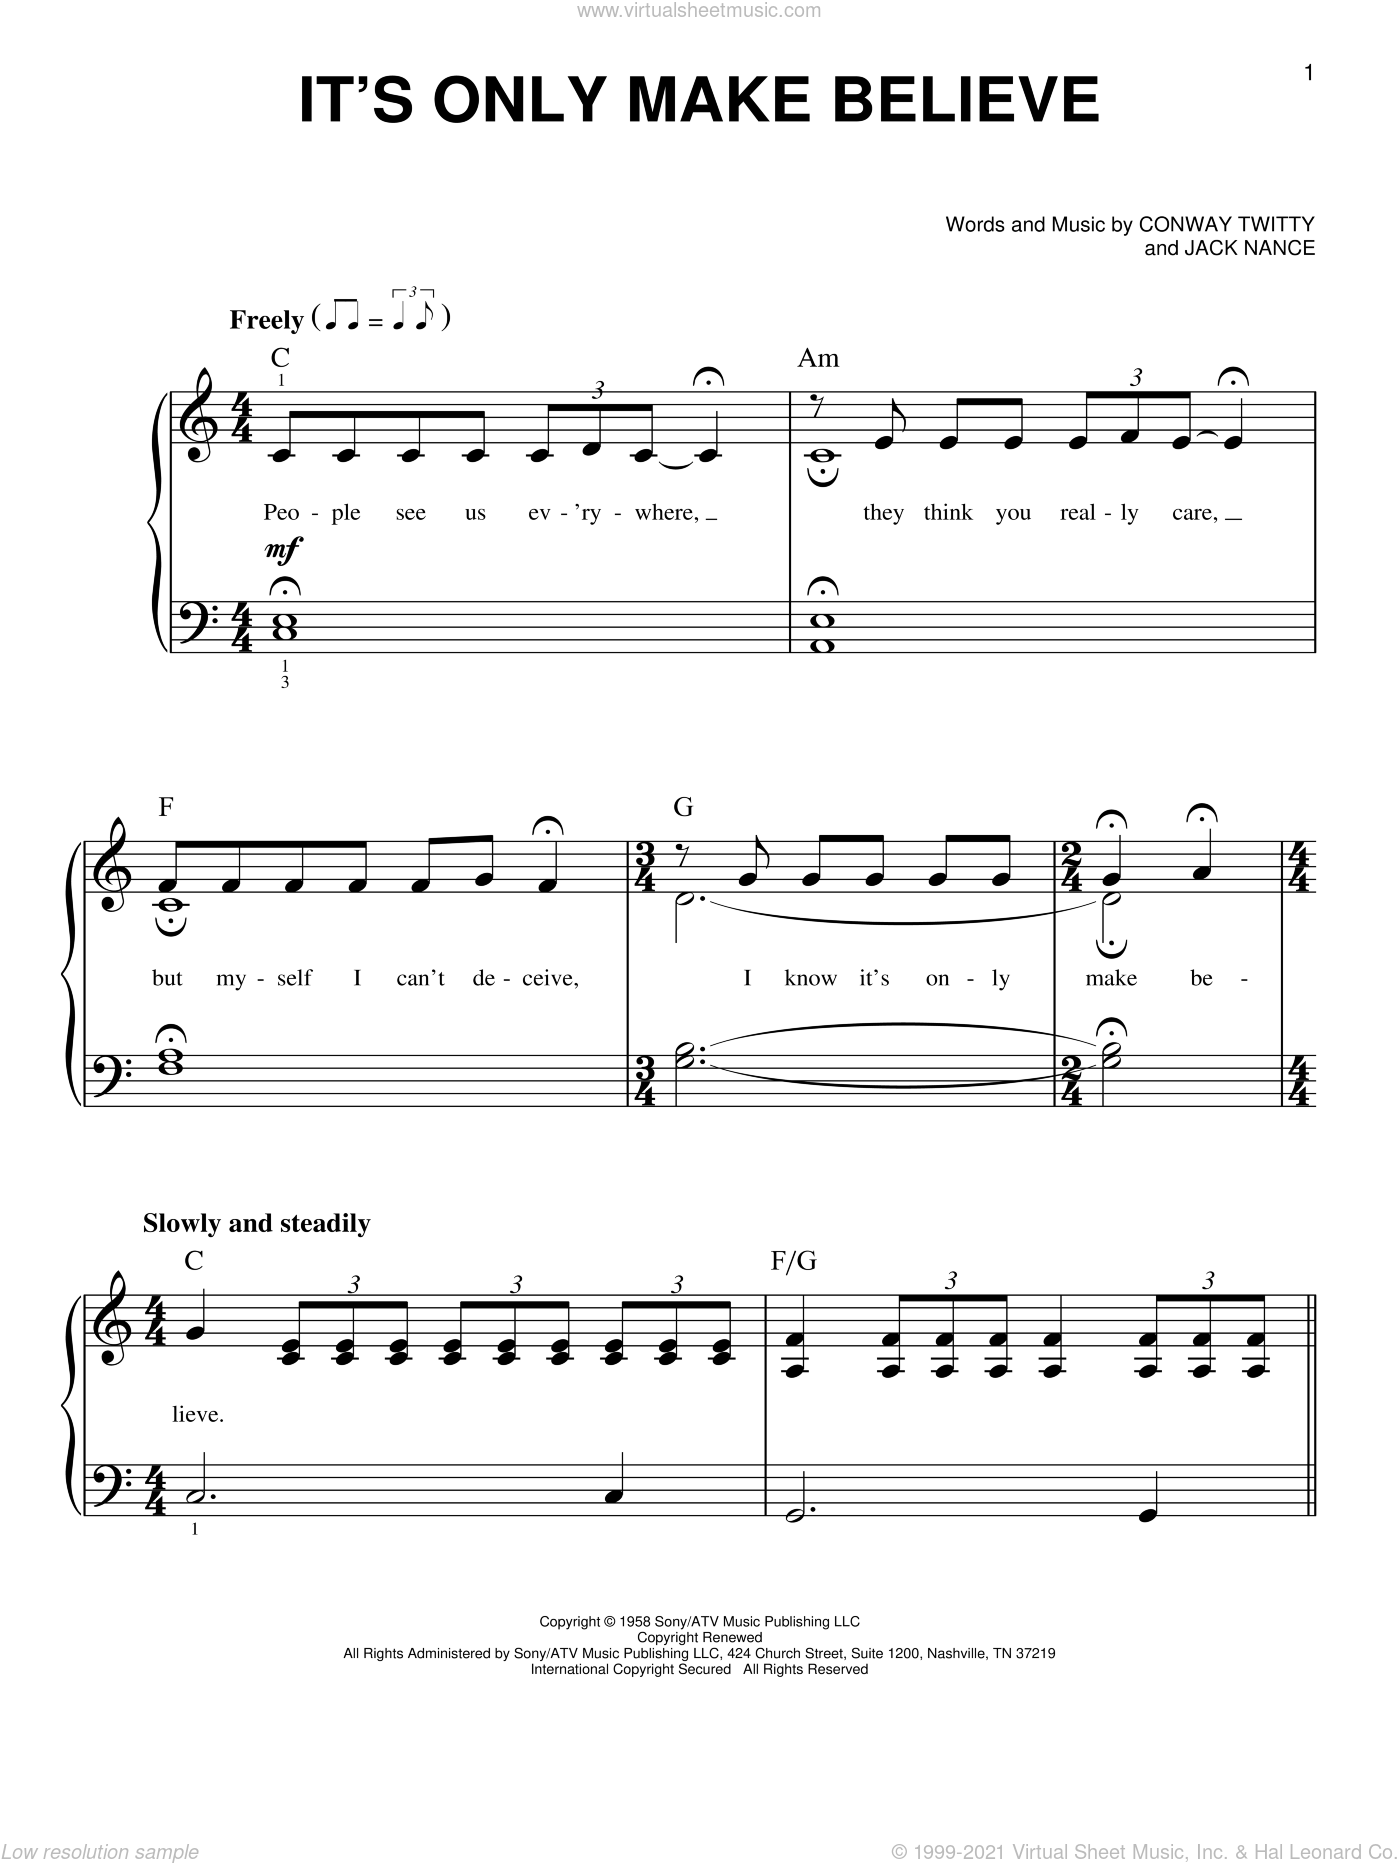 It's Only Make Believe sheet music for piano solo by Jack Nance